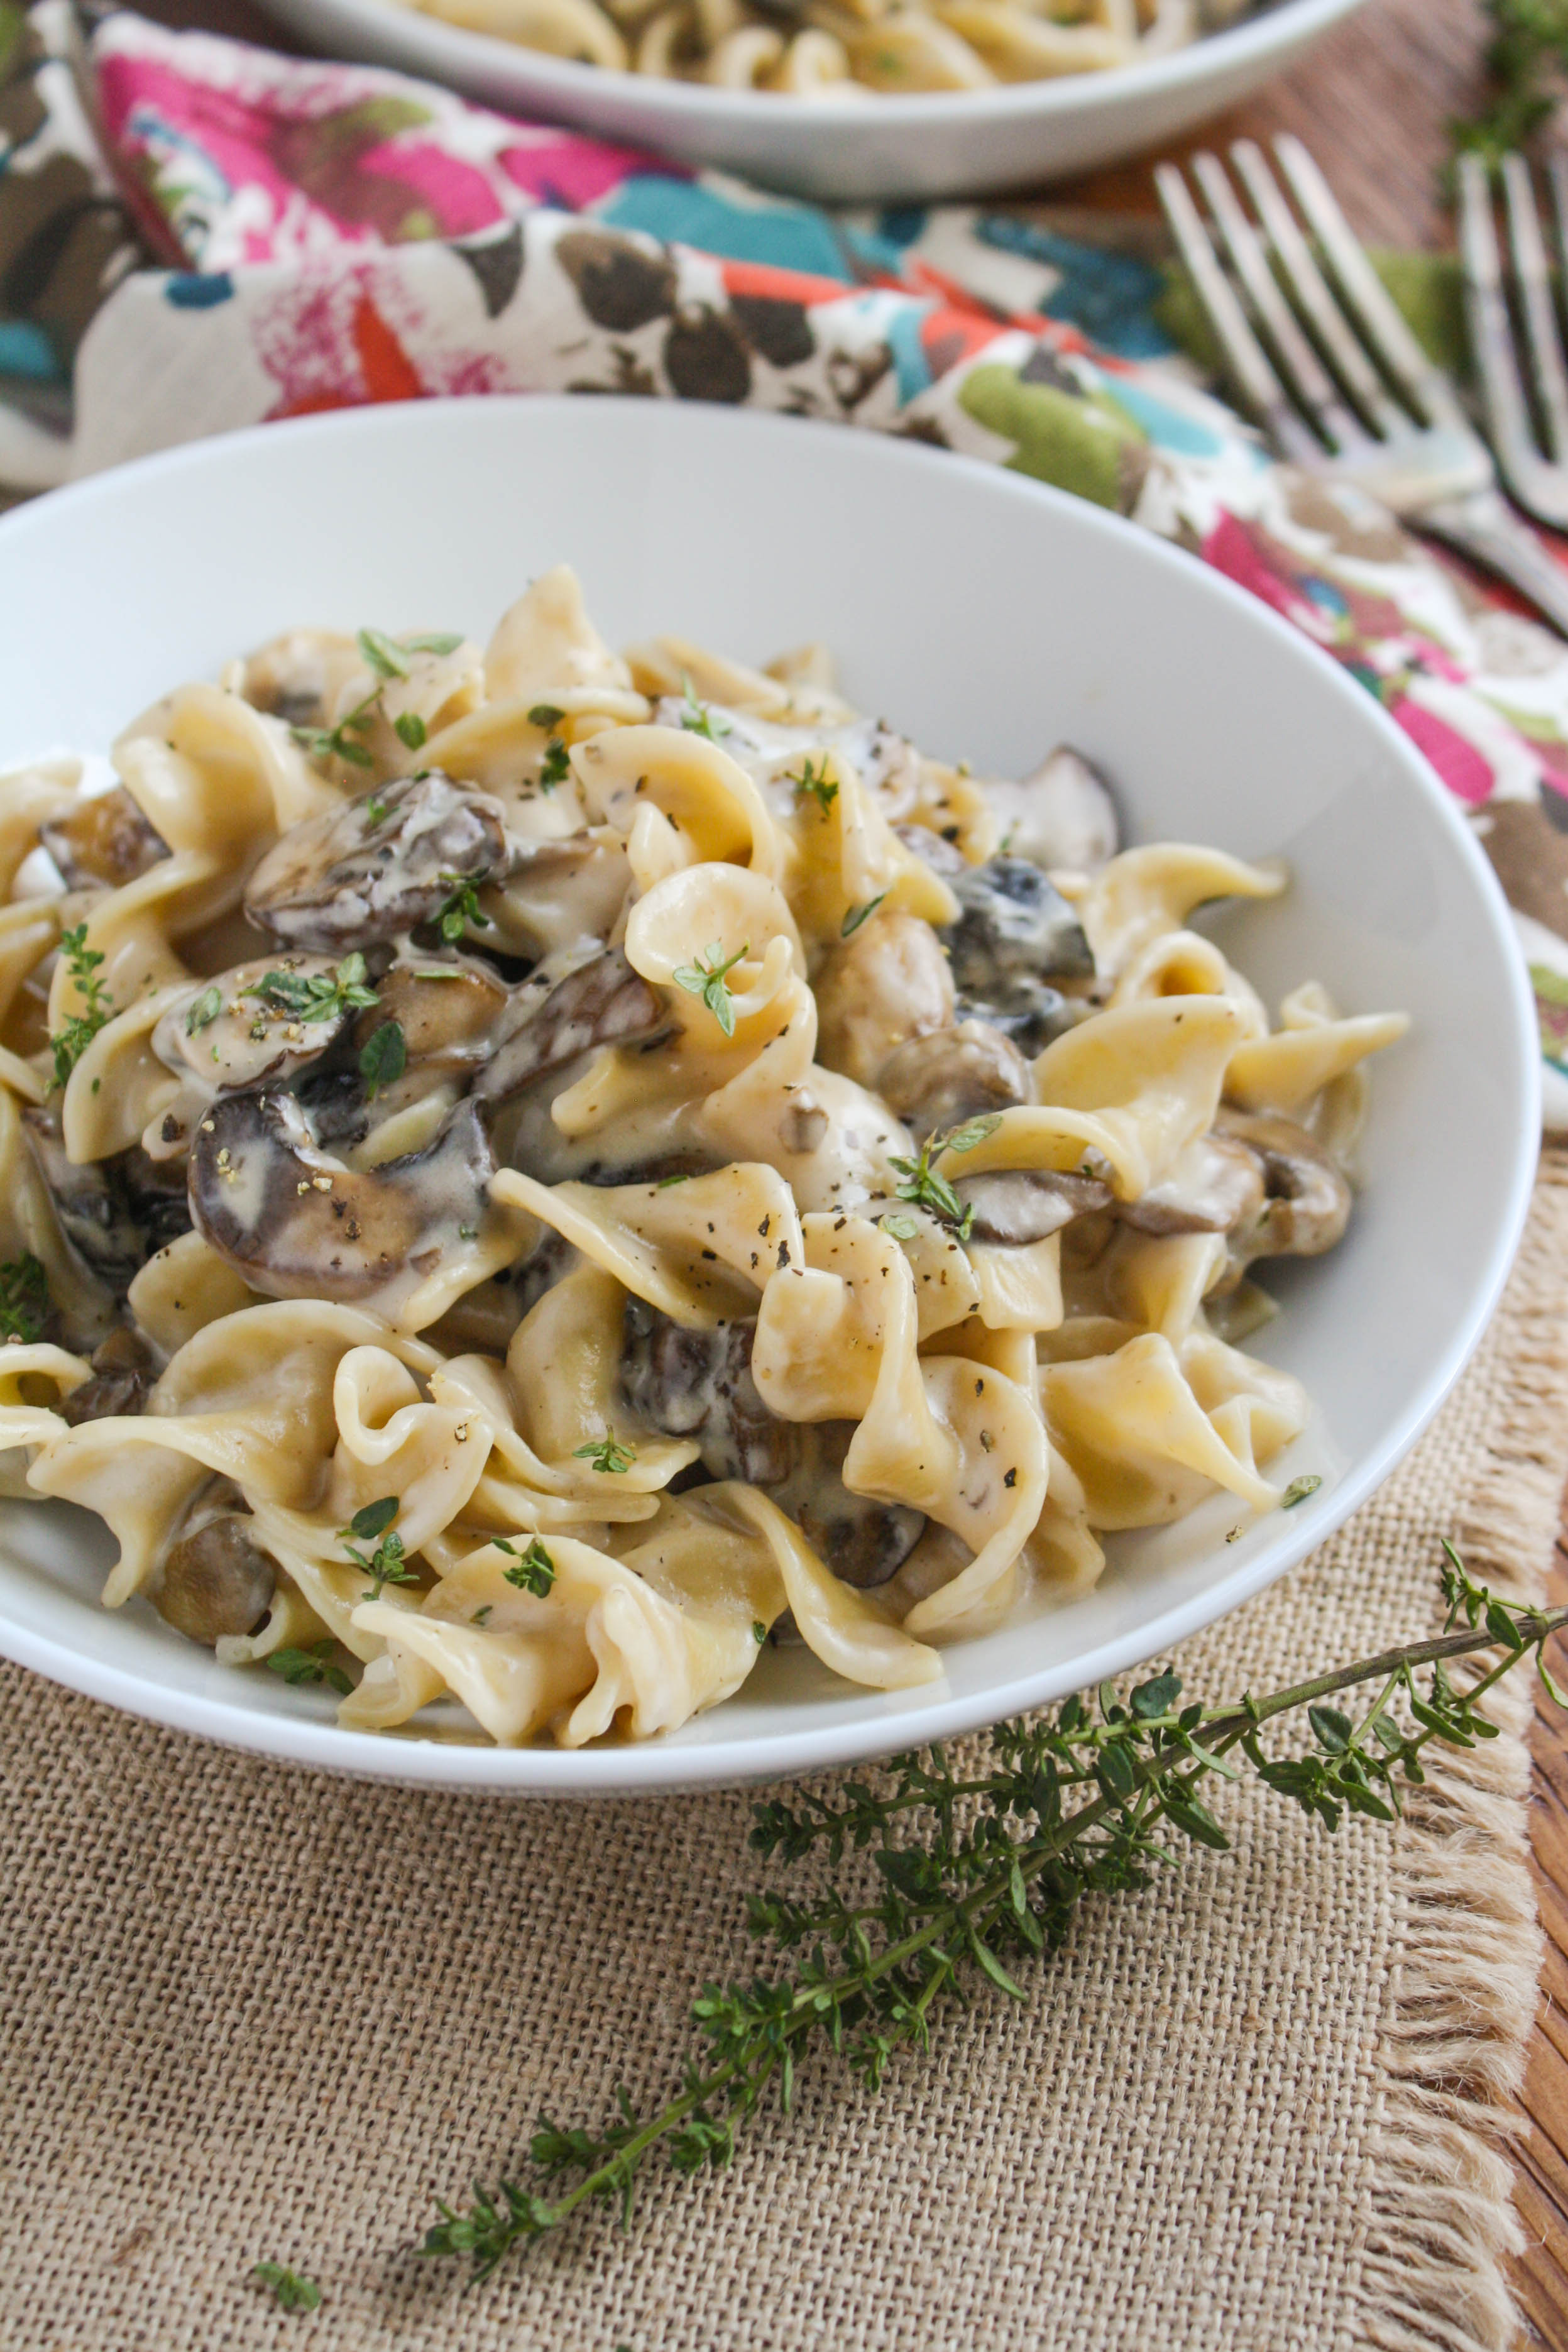 Mushroom Stroganoff is a delicious, creamy dish perfect on a chilly night. You'll love this vegetarian stroganoff dish!